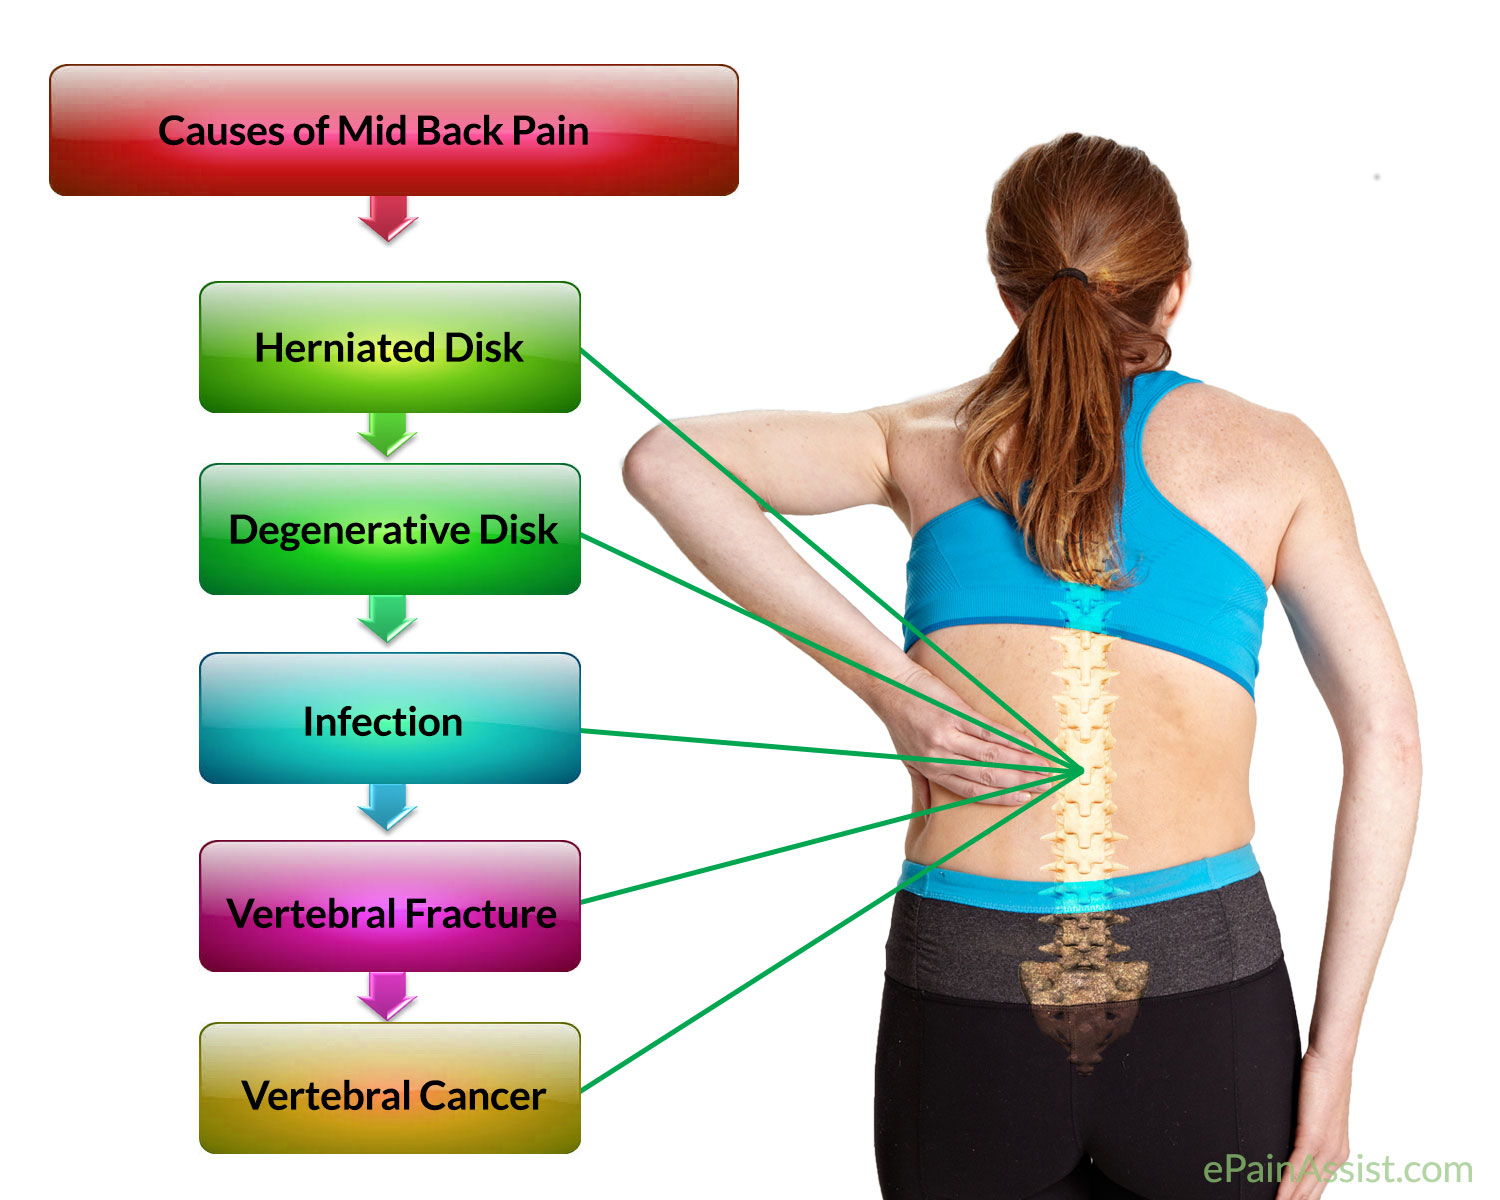 Q&A: Mid Back Pain in Young Individual Aged 45 Years